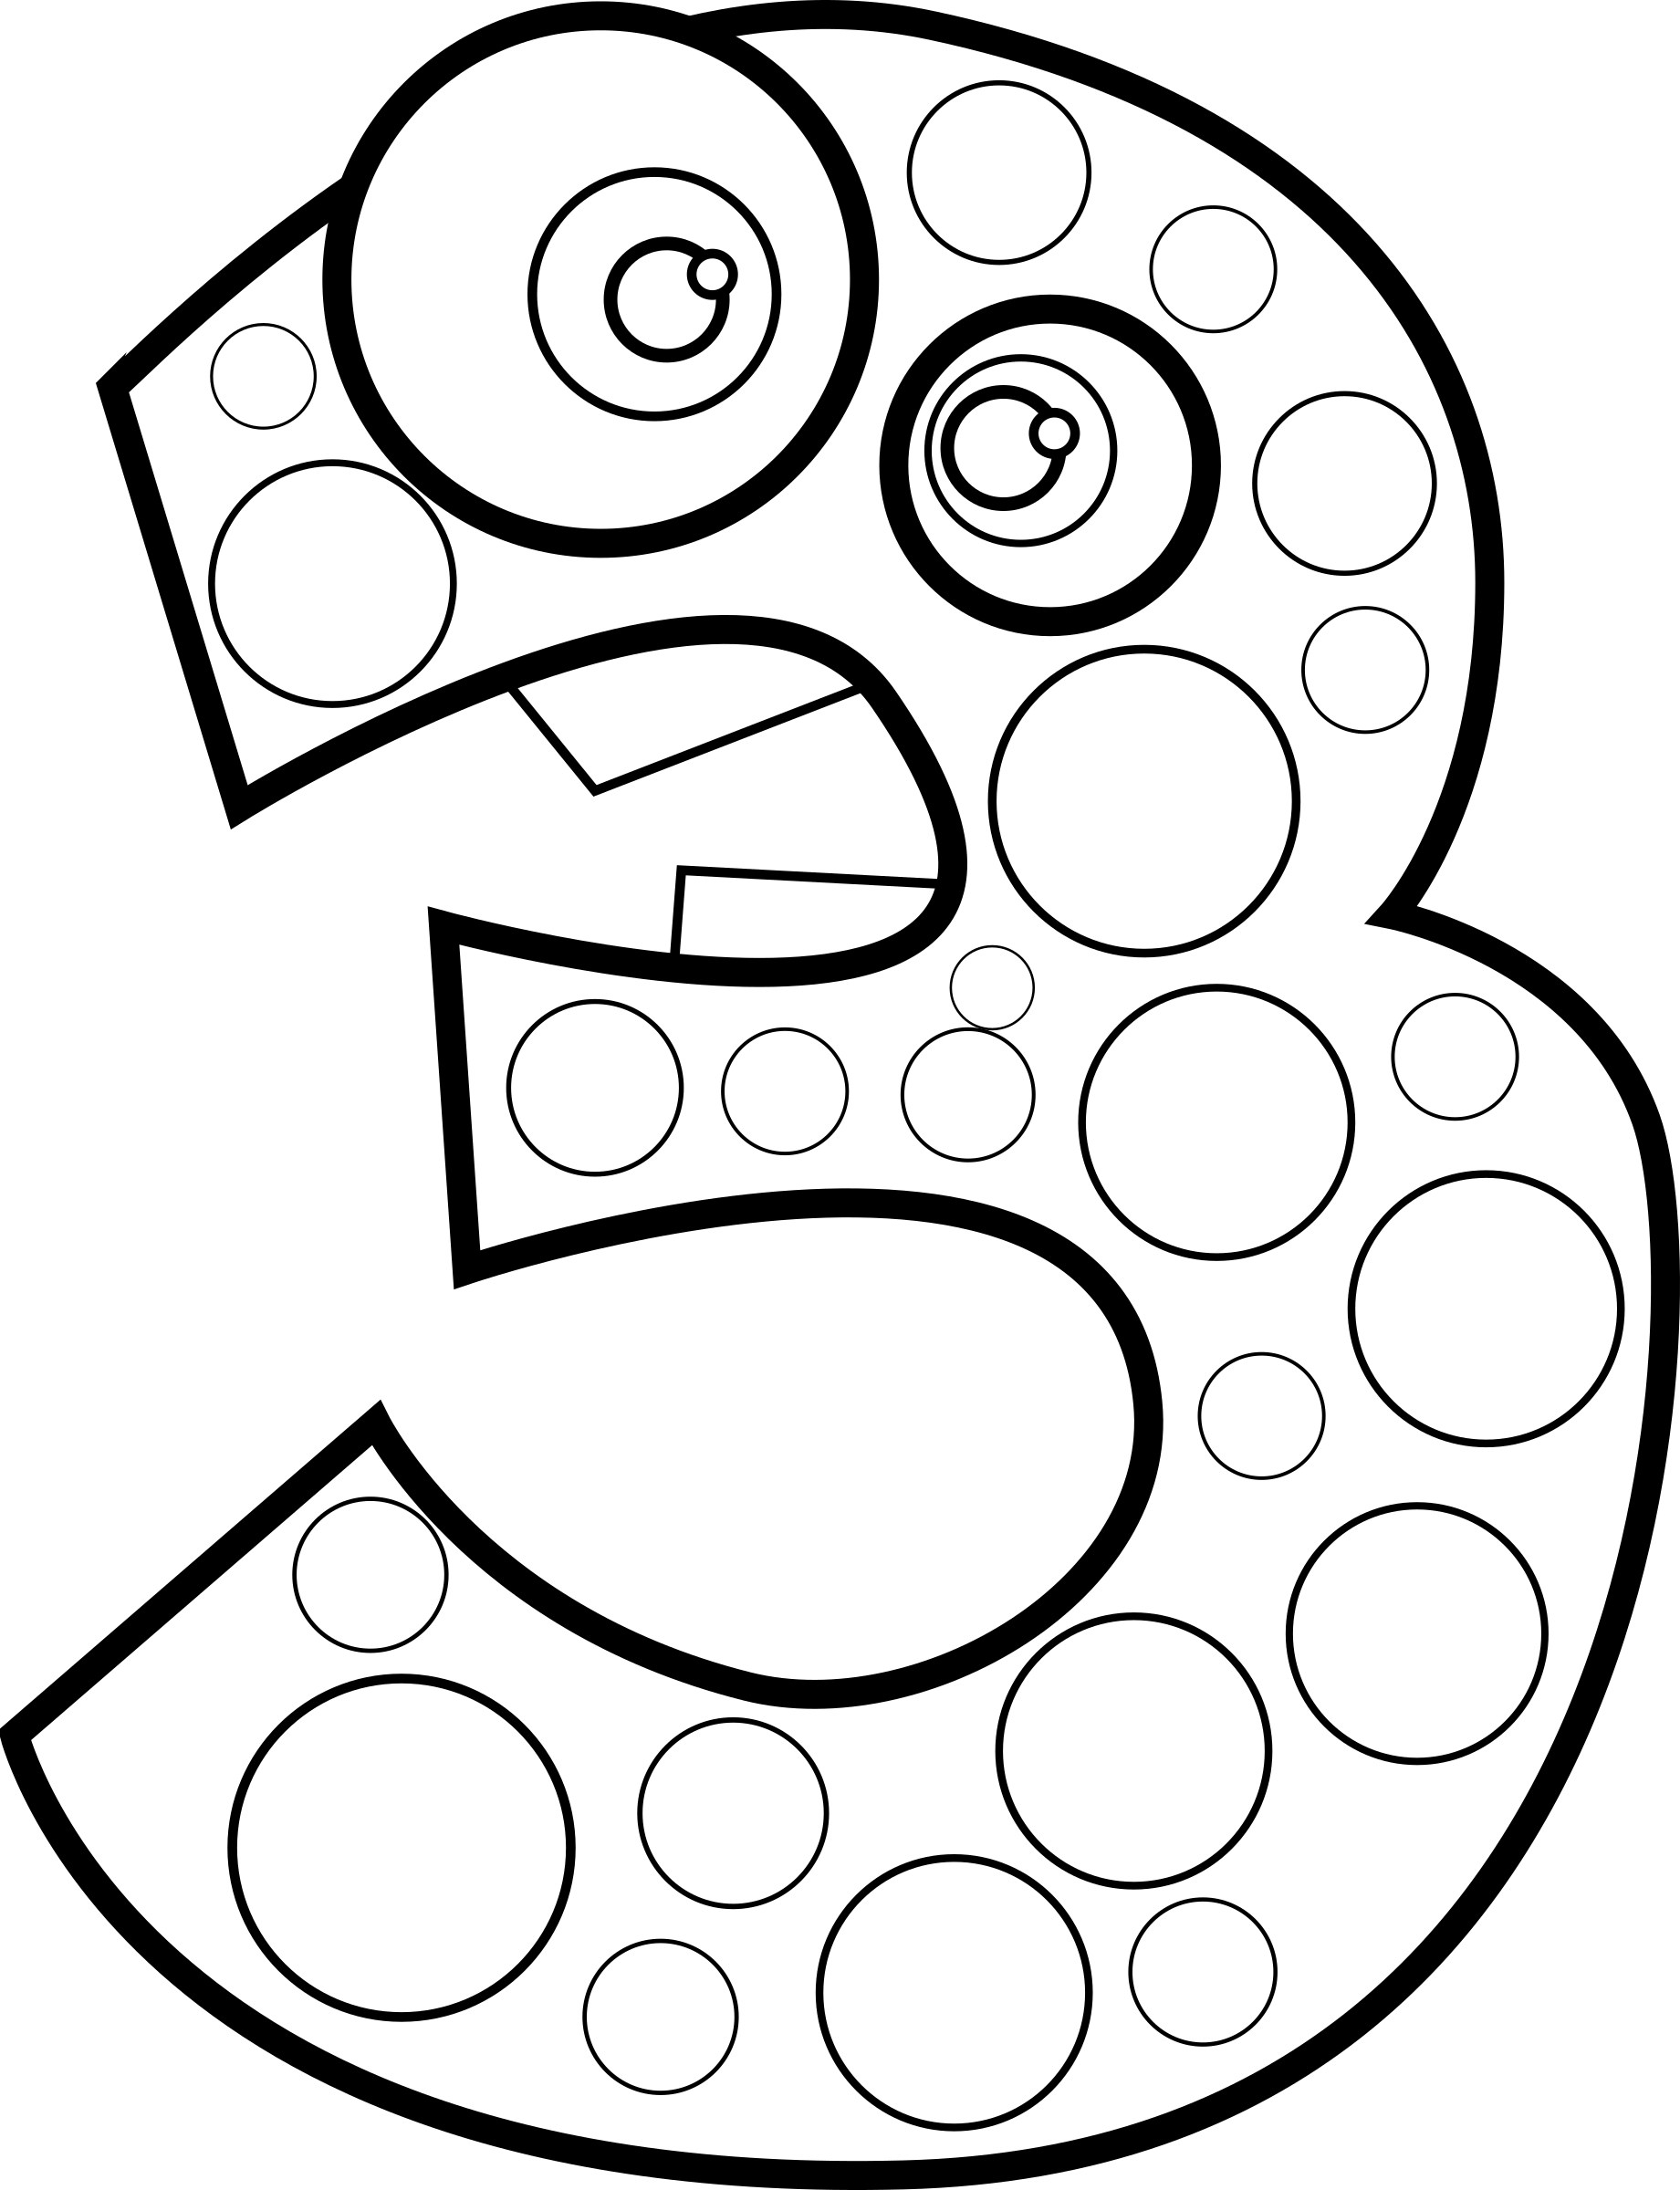 Number three lineart big. 3 clipart animal royalty free library